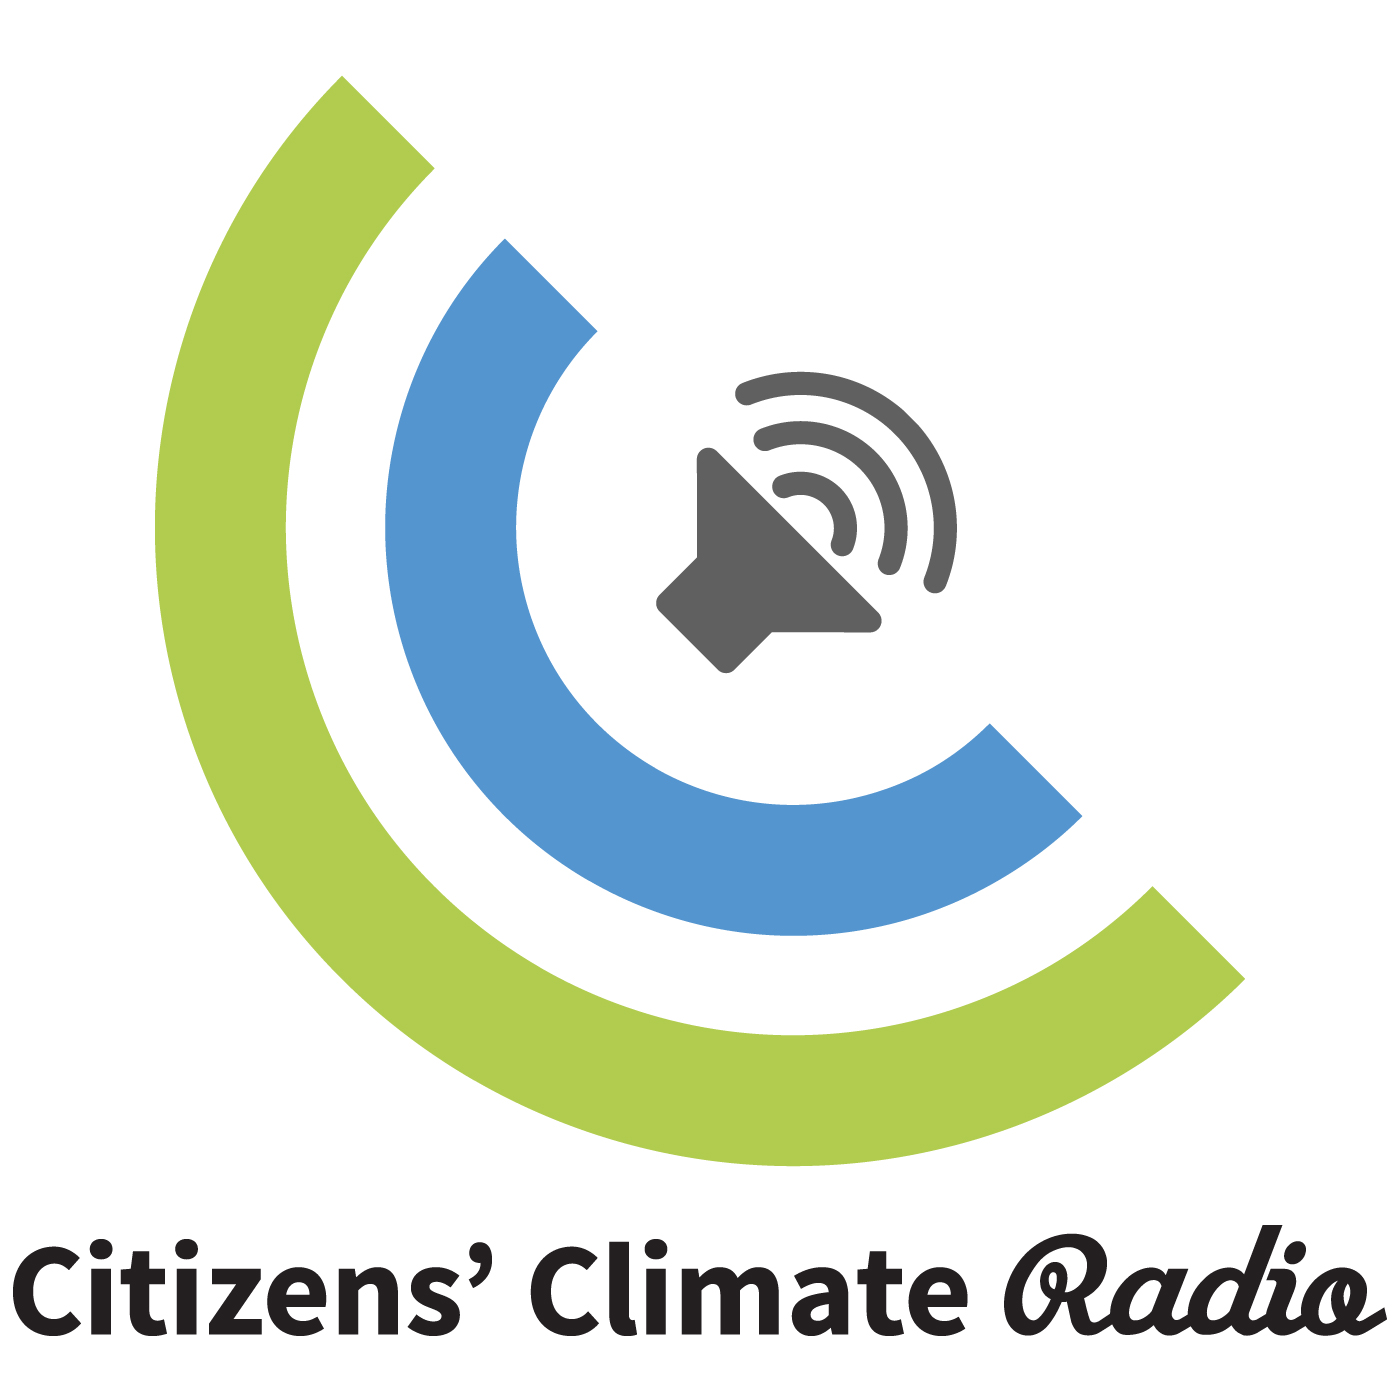 Citizens Climate Radio Ep 4  Dr. Katharine Hayhoe and Communication Myths